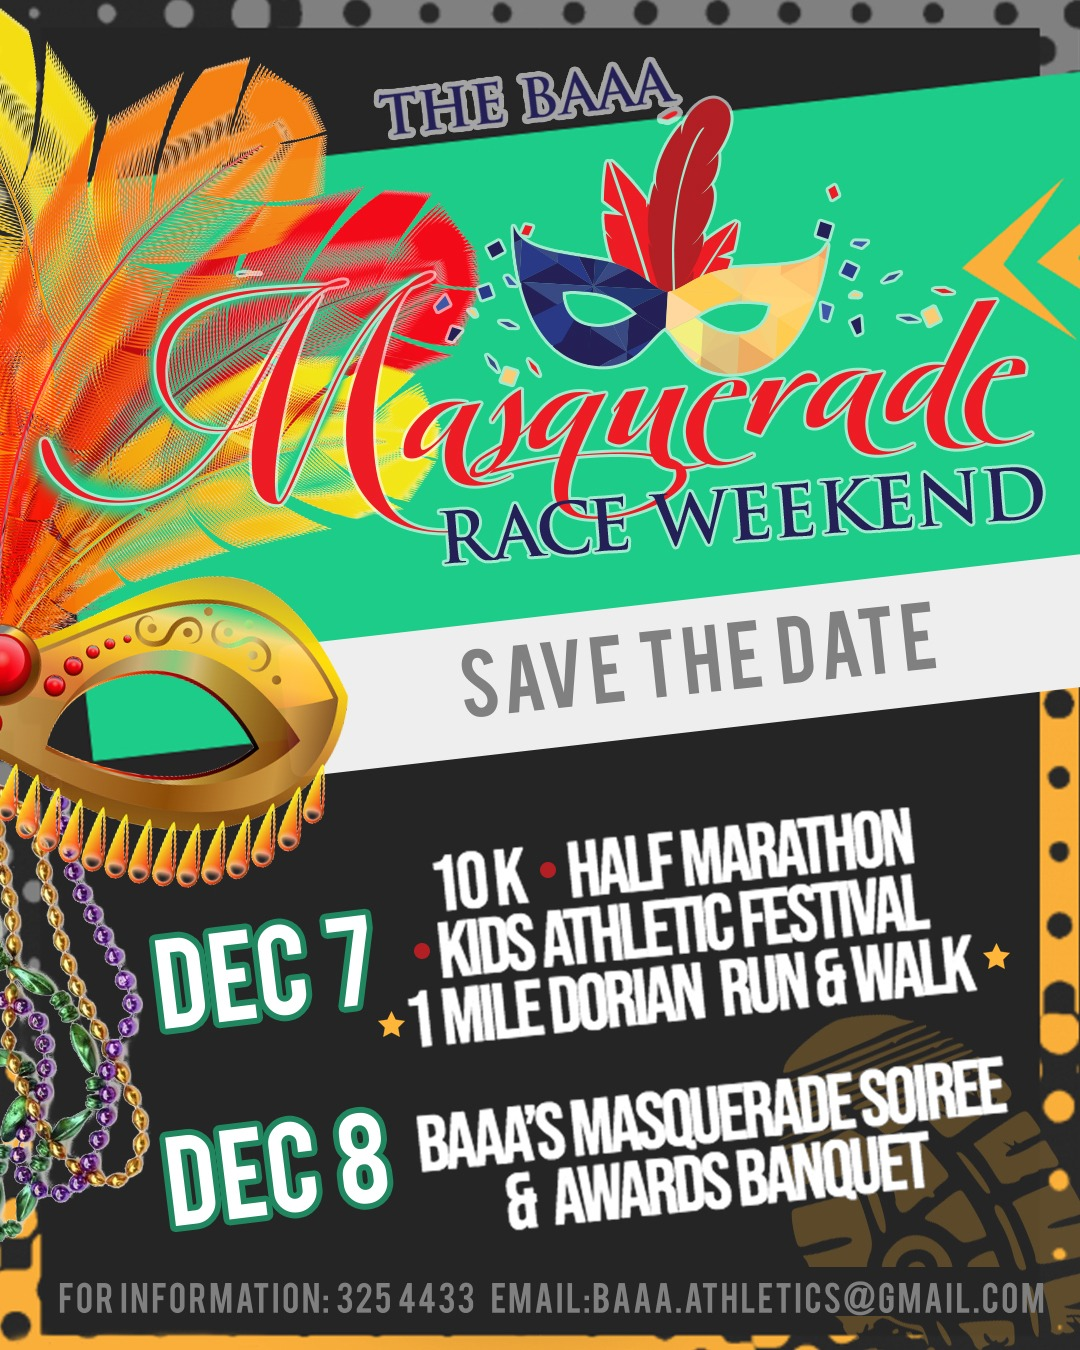 Masquerade Race Weekend